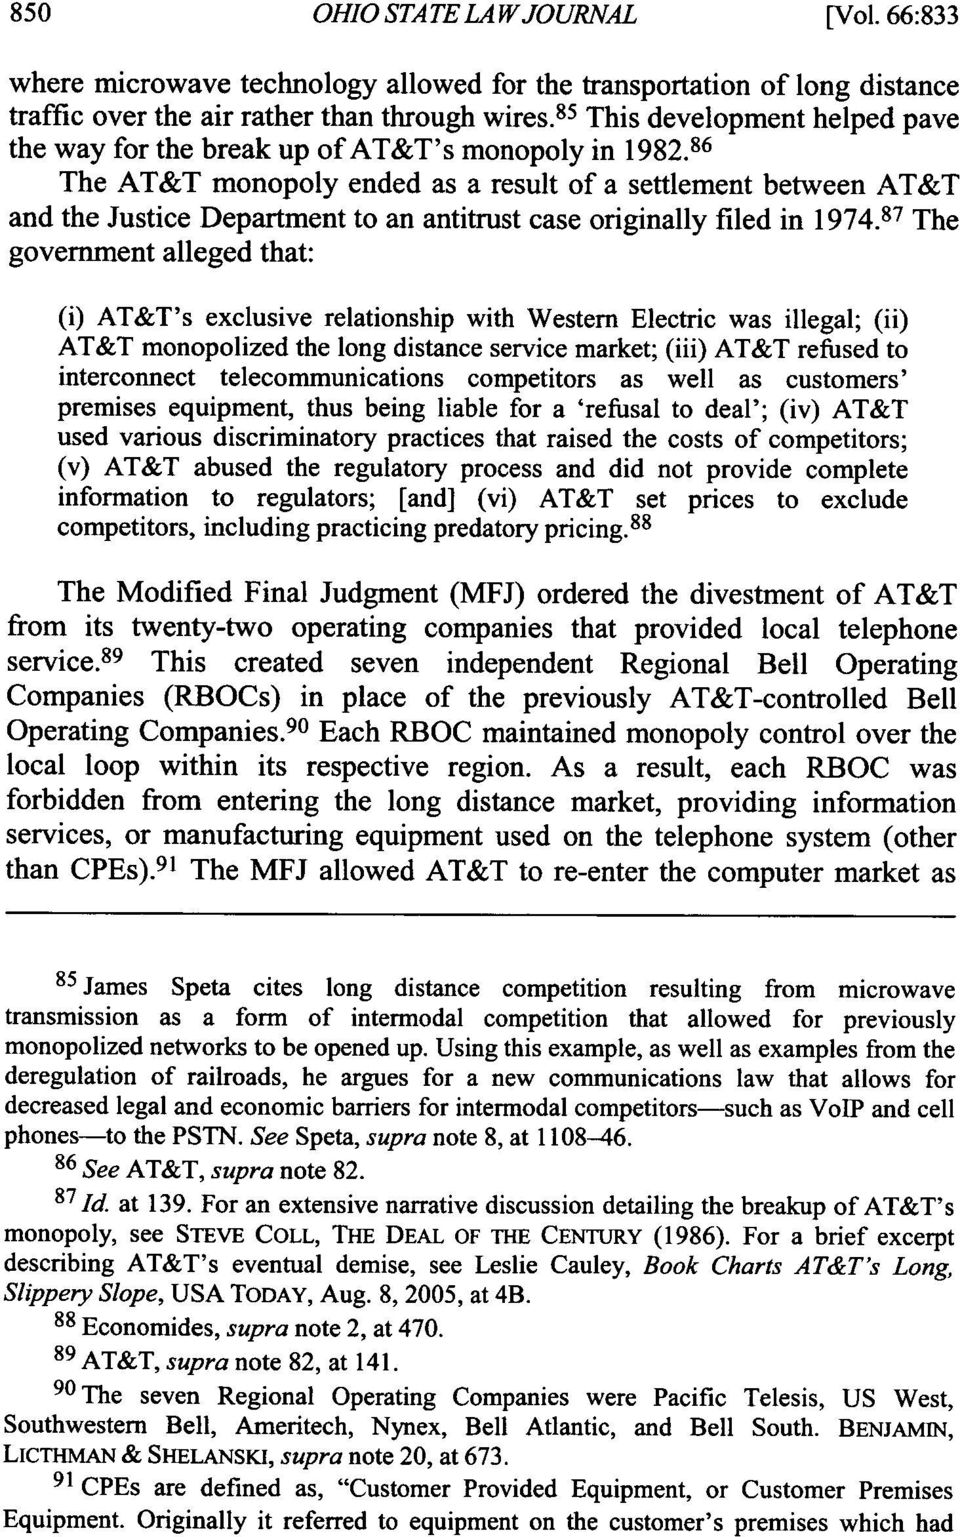 86 The AT&T monopoly ended as a result of a settlement between AT&T and the Justice Department to an antitrust case originally filed in 1974.